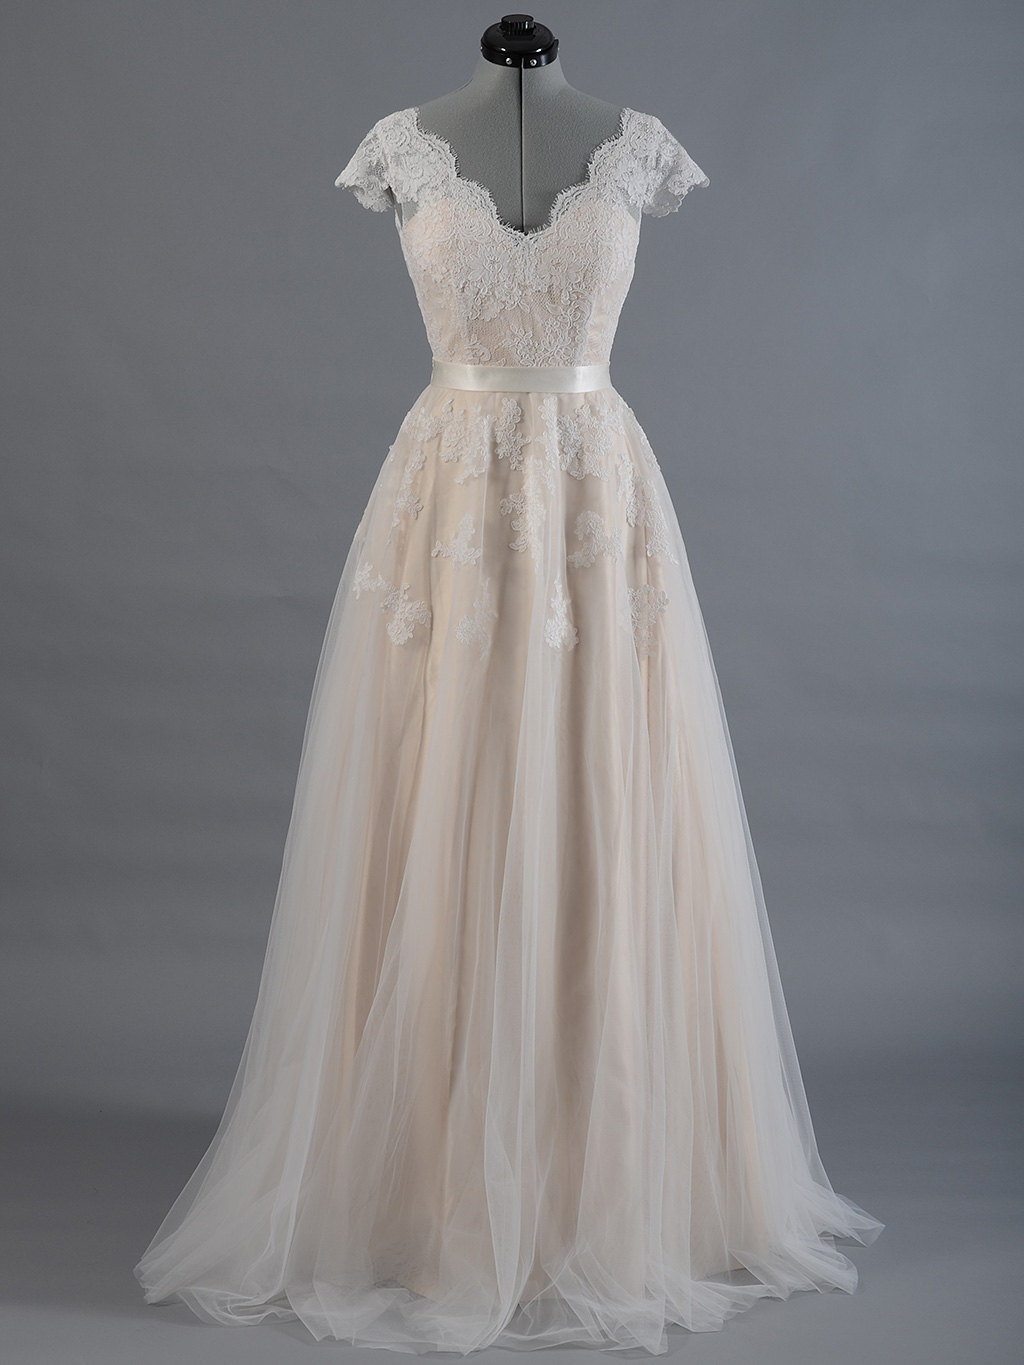 Image1xxl 500 Dollar Wedding Dress On Etsy 8 Gorgeous